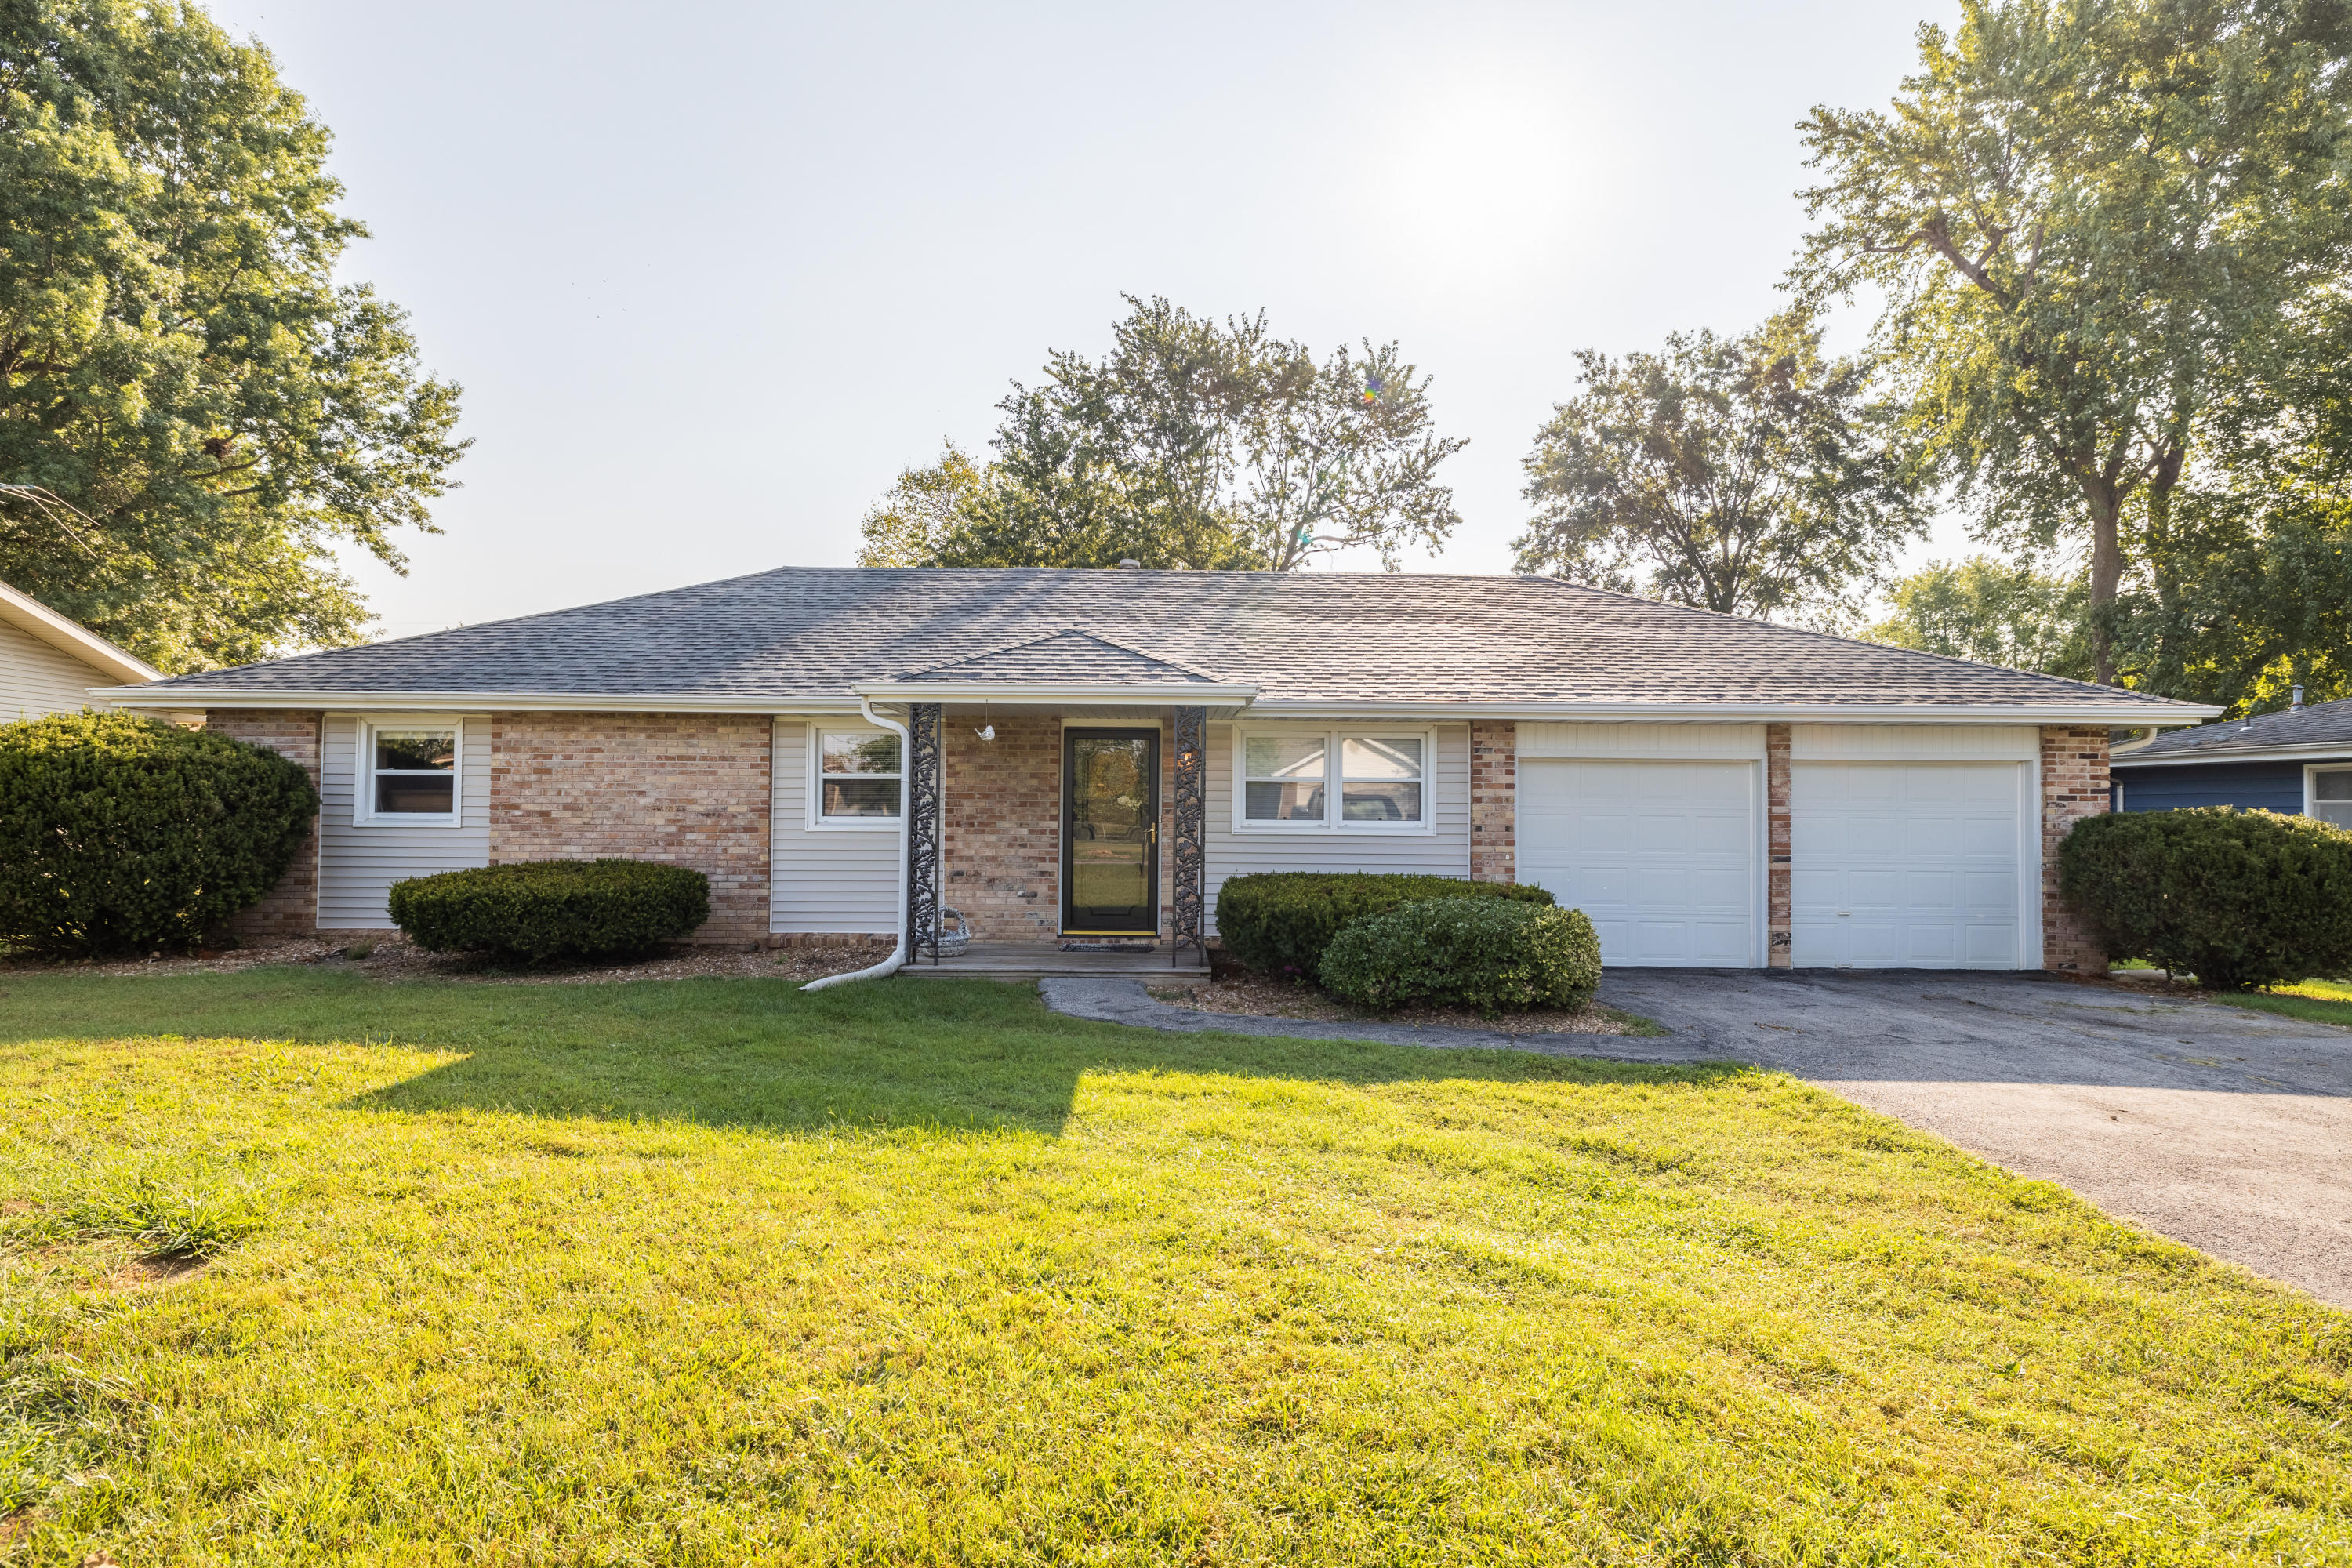 5836 South State Hwy Ff Battlefield, MO 65619